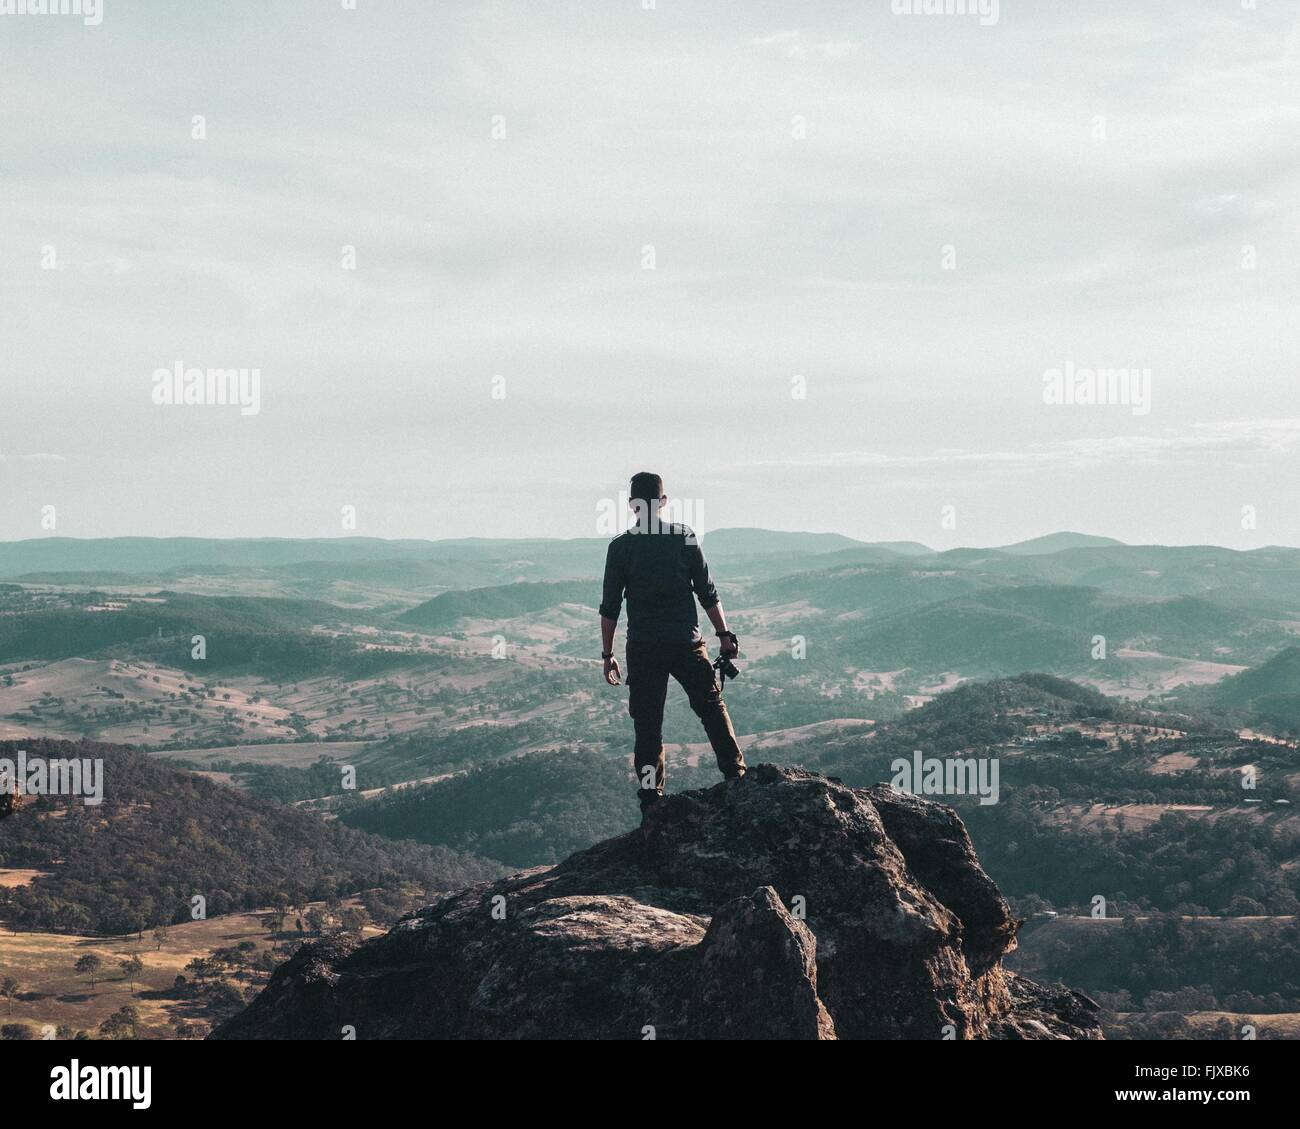 Rear View Of Man Standing On Cliff - Stock Image